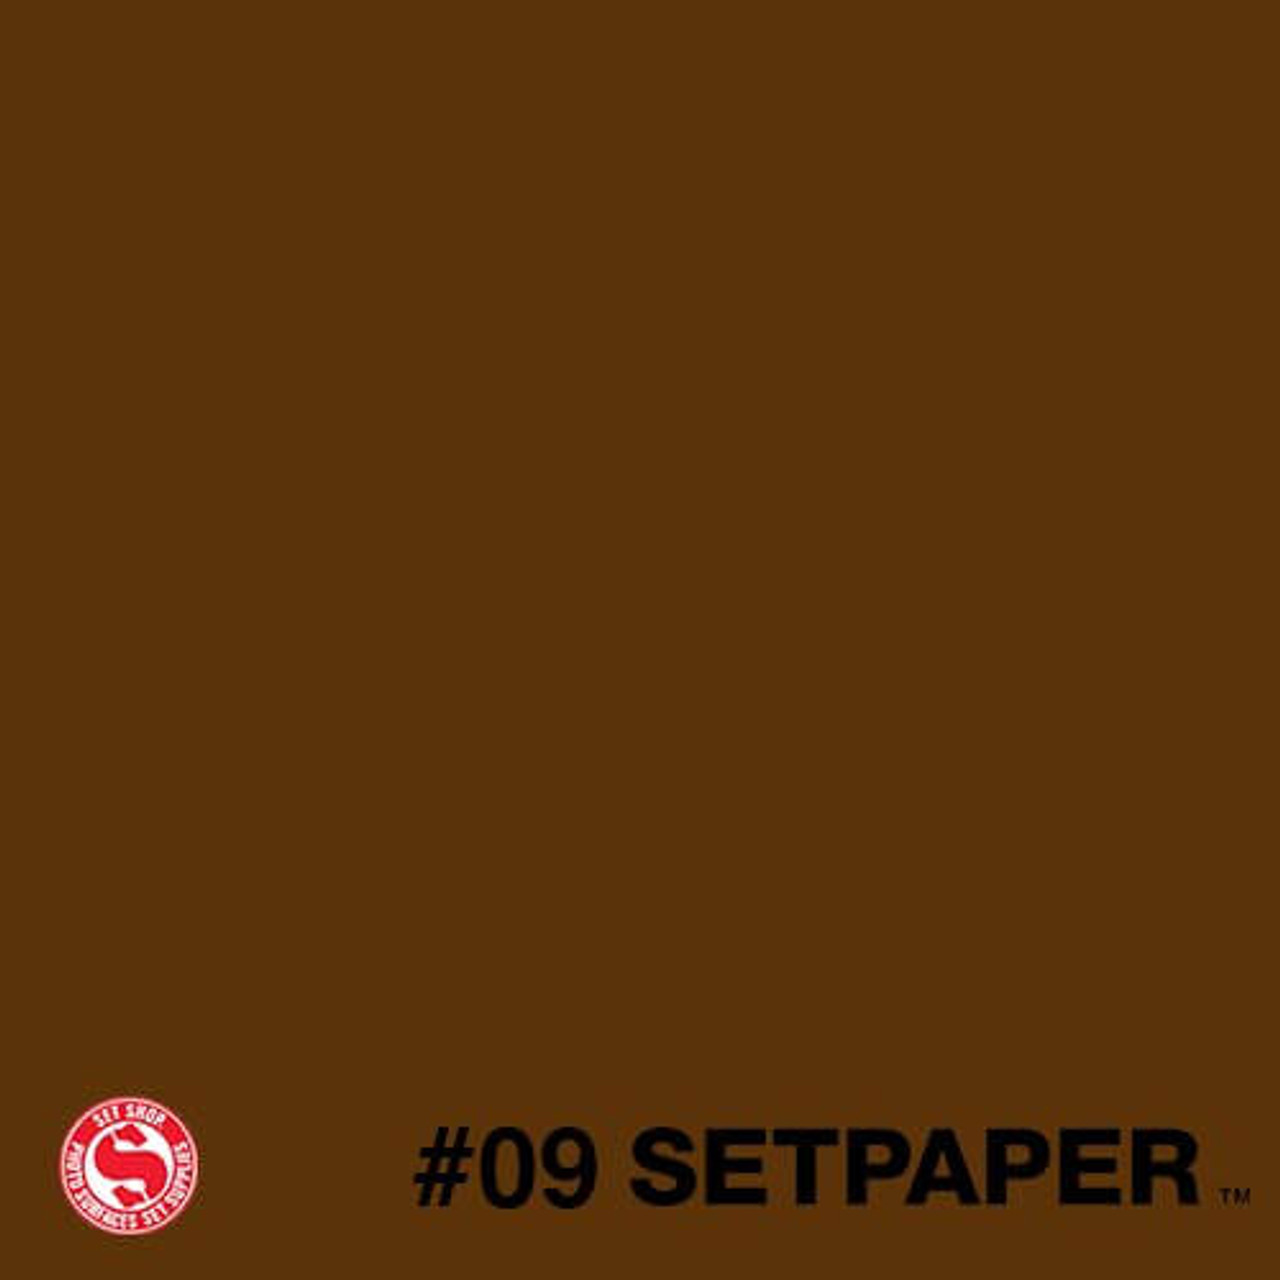 "209 SETPAPER - DARK BROWN 26"" x 36' (0.66m  X 11m)"